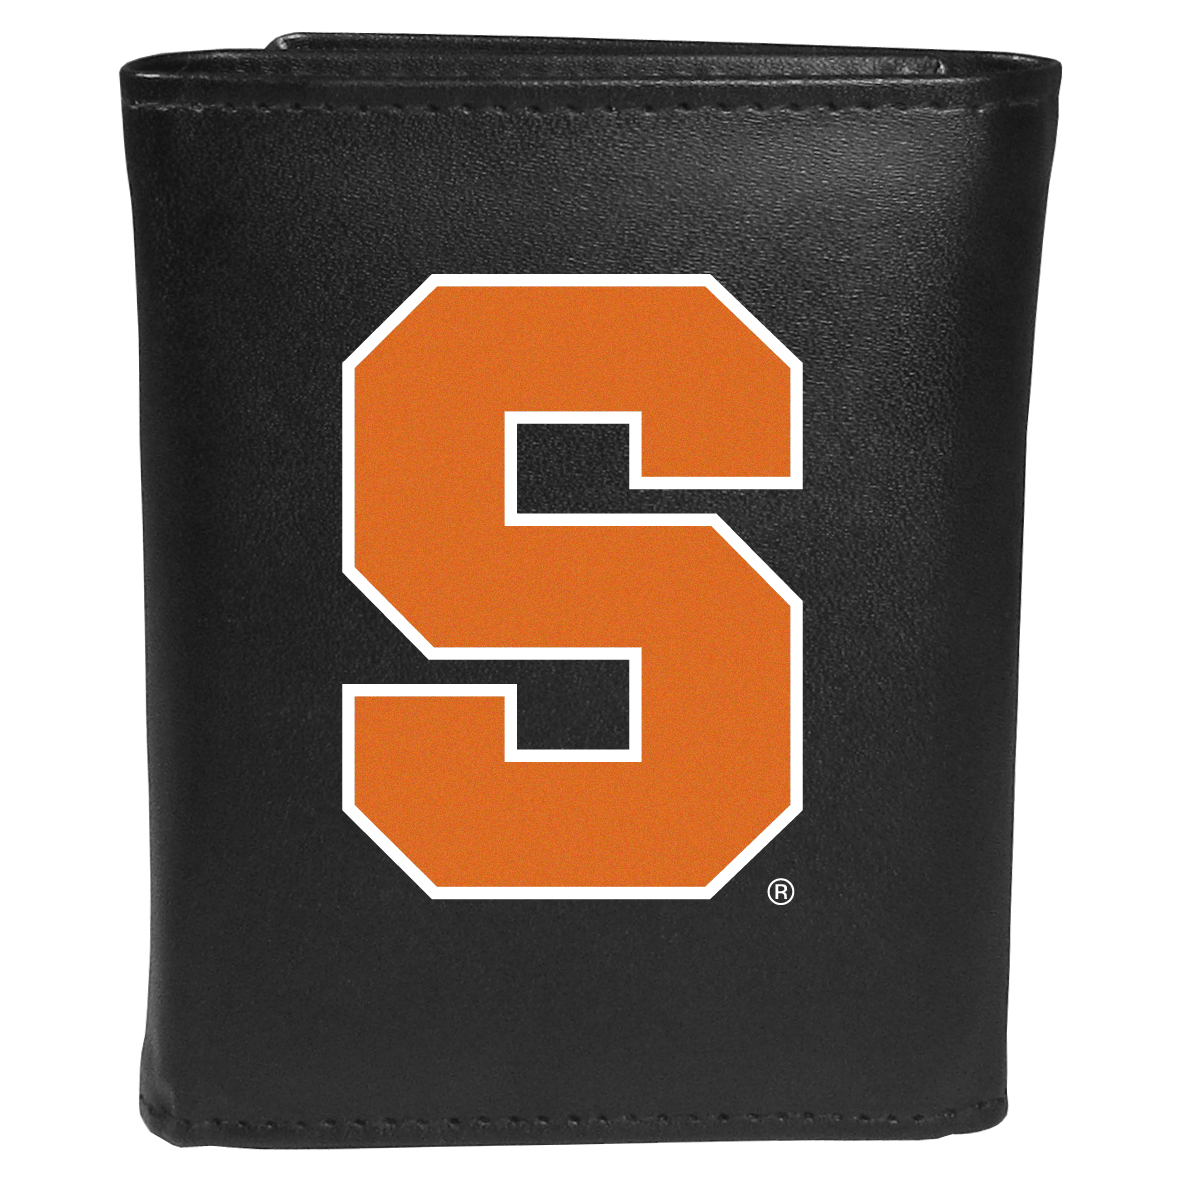 Syracuse Orange Tri-fold Wallet Large Logo - Sports fans do not have to sacrifice style with this classic tri-fold wallet that sports theSyracuse Orange?extra large logo. This men's fashion accessory has a leather grain look and expert craftmanship for a quality wallet at a great price. The wallet features inner credit card slots, windowed ID slot and a large billfold pocket. The front of the wallet features an extra large printed team logo.